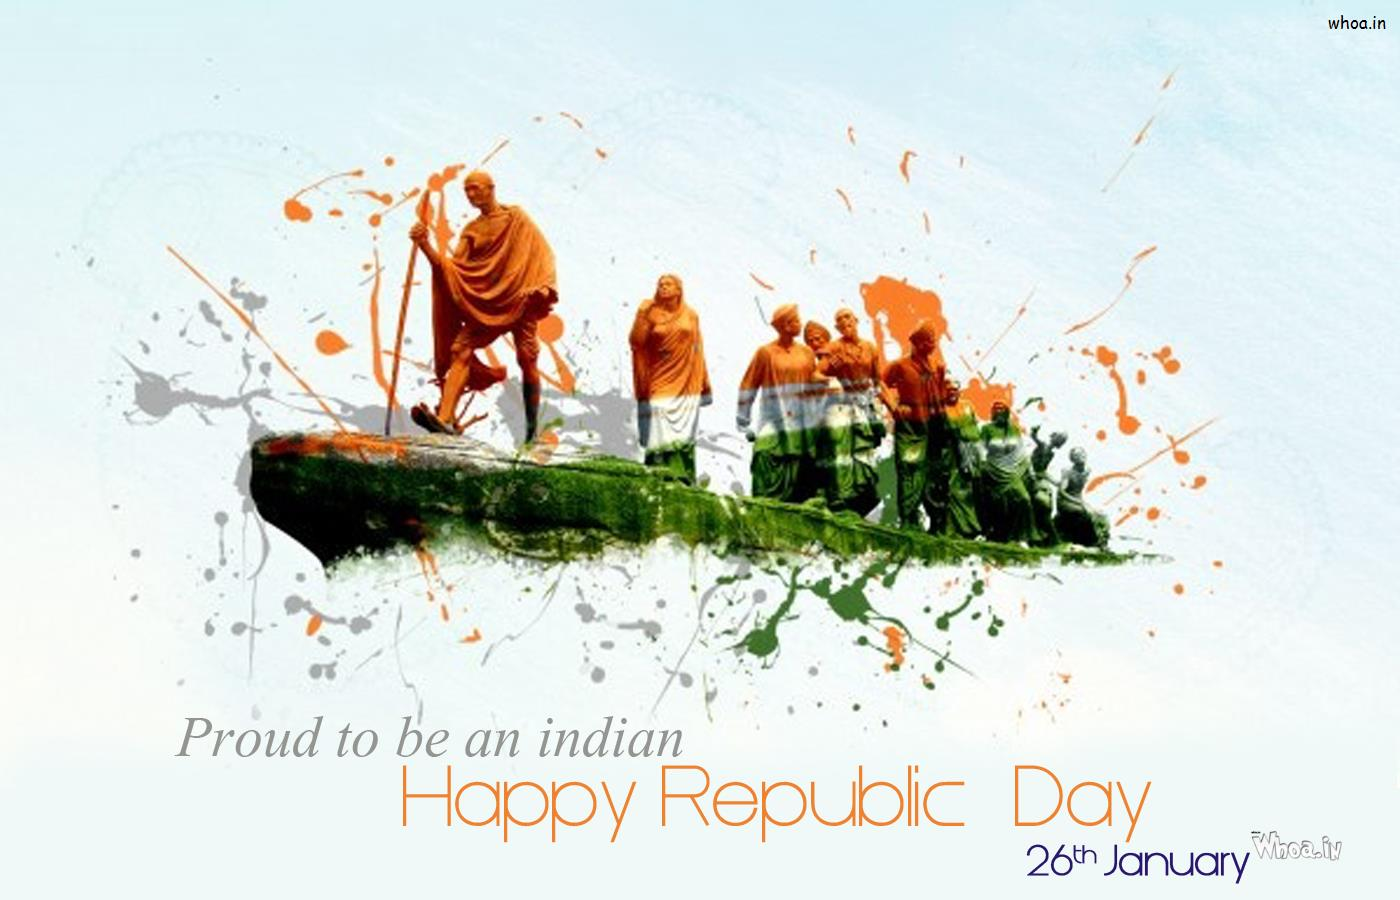 Proud To Be An Indian And Happy Republic Day Wallpaper With Freedom Fi 1400x900